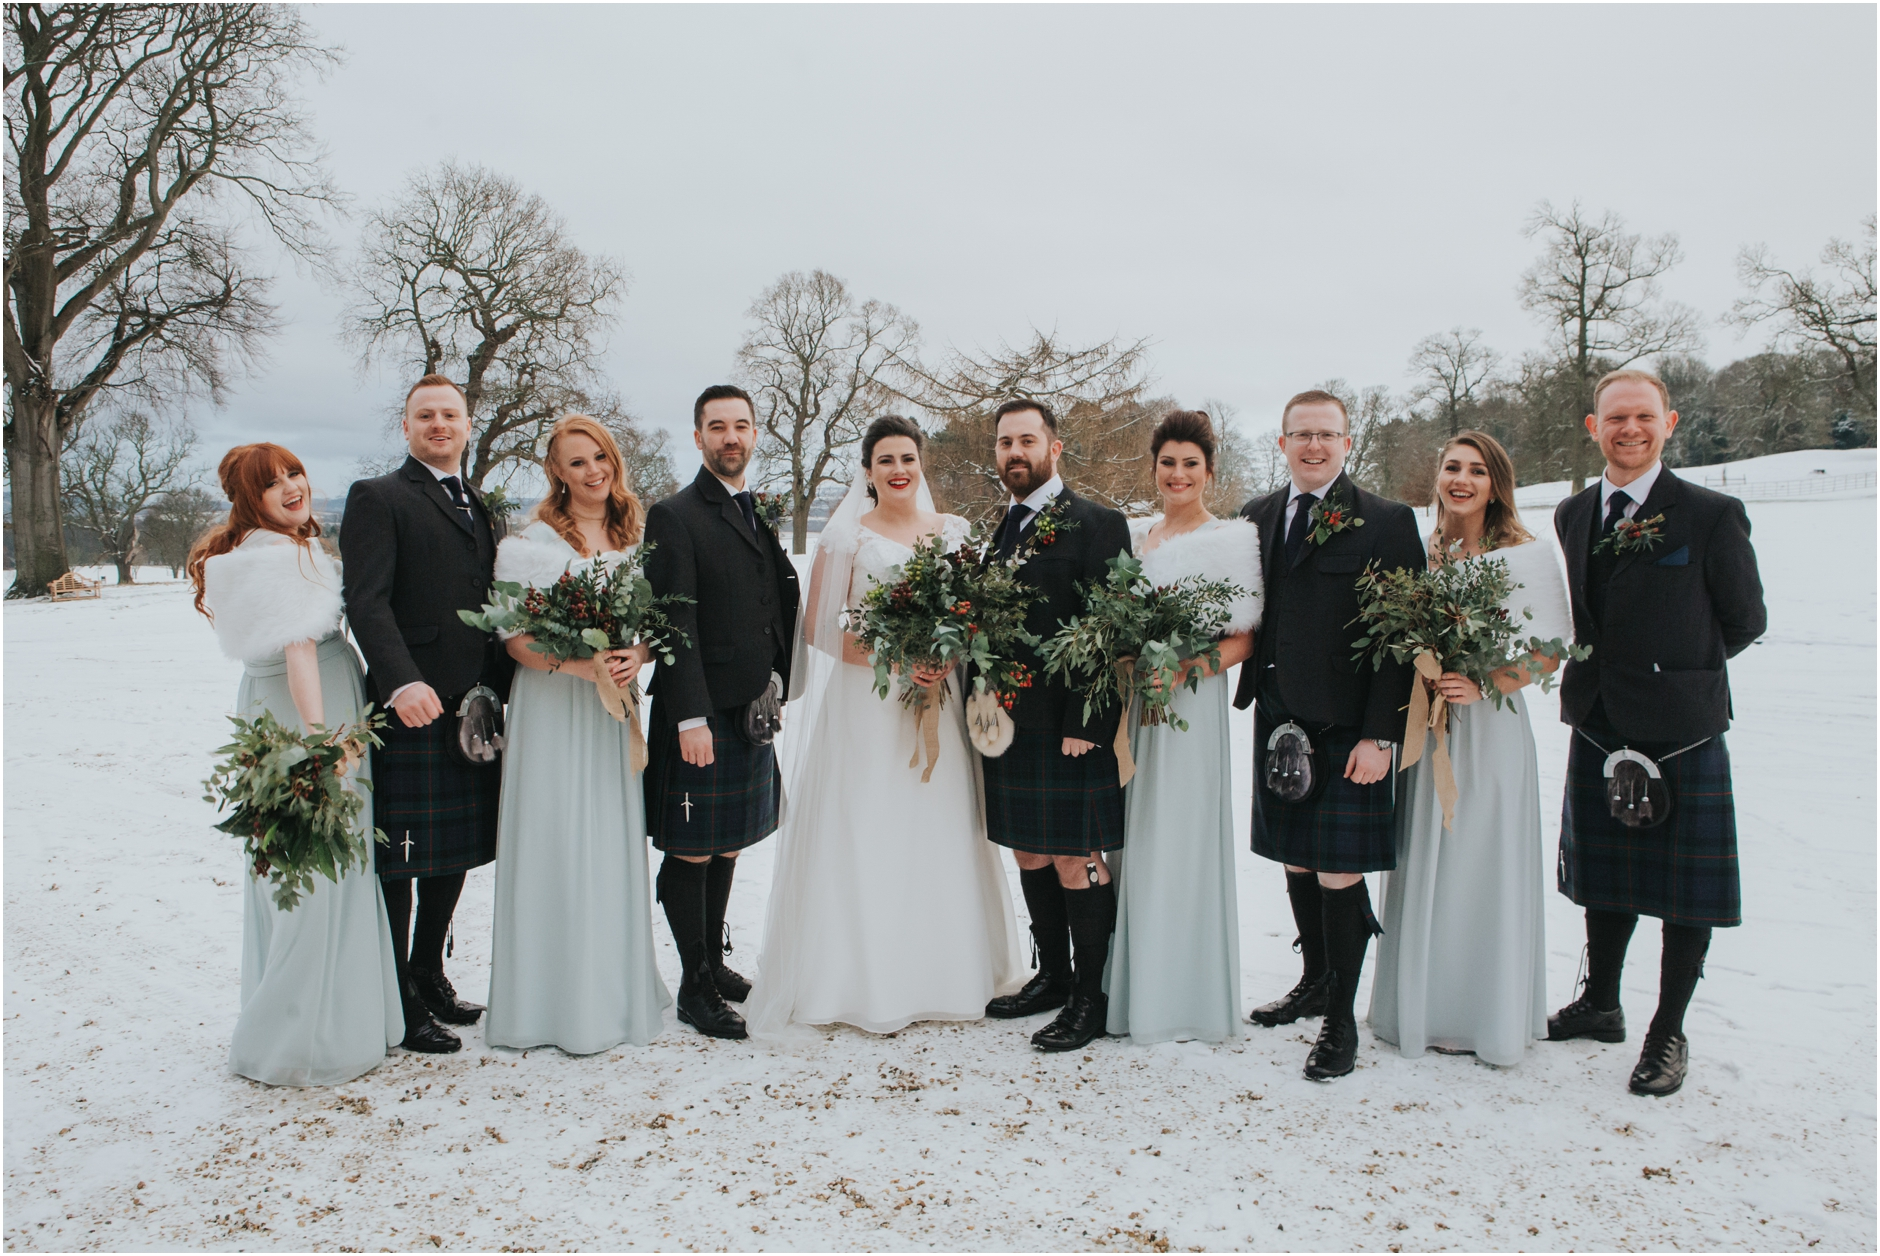 dundas castle wedding winter snow bridal party edinburgh south queensferry